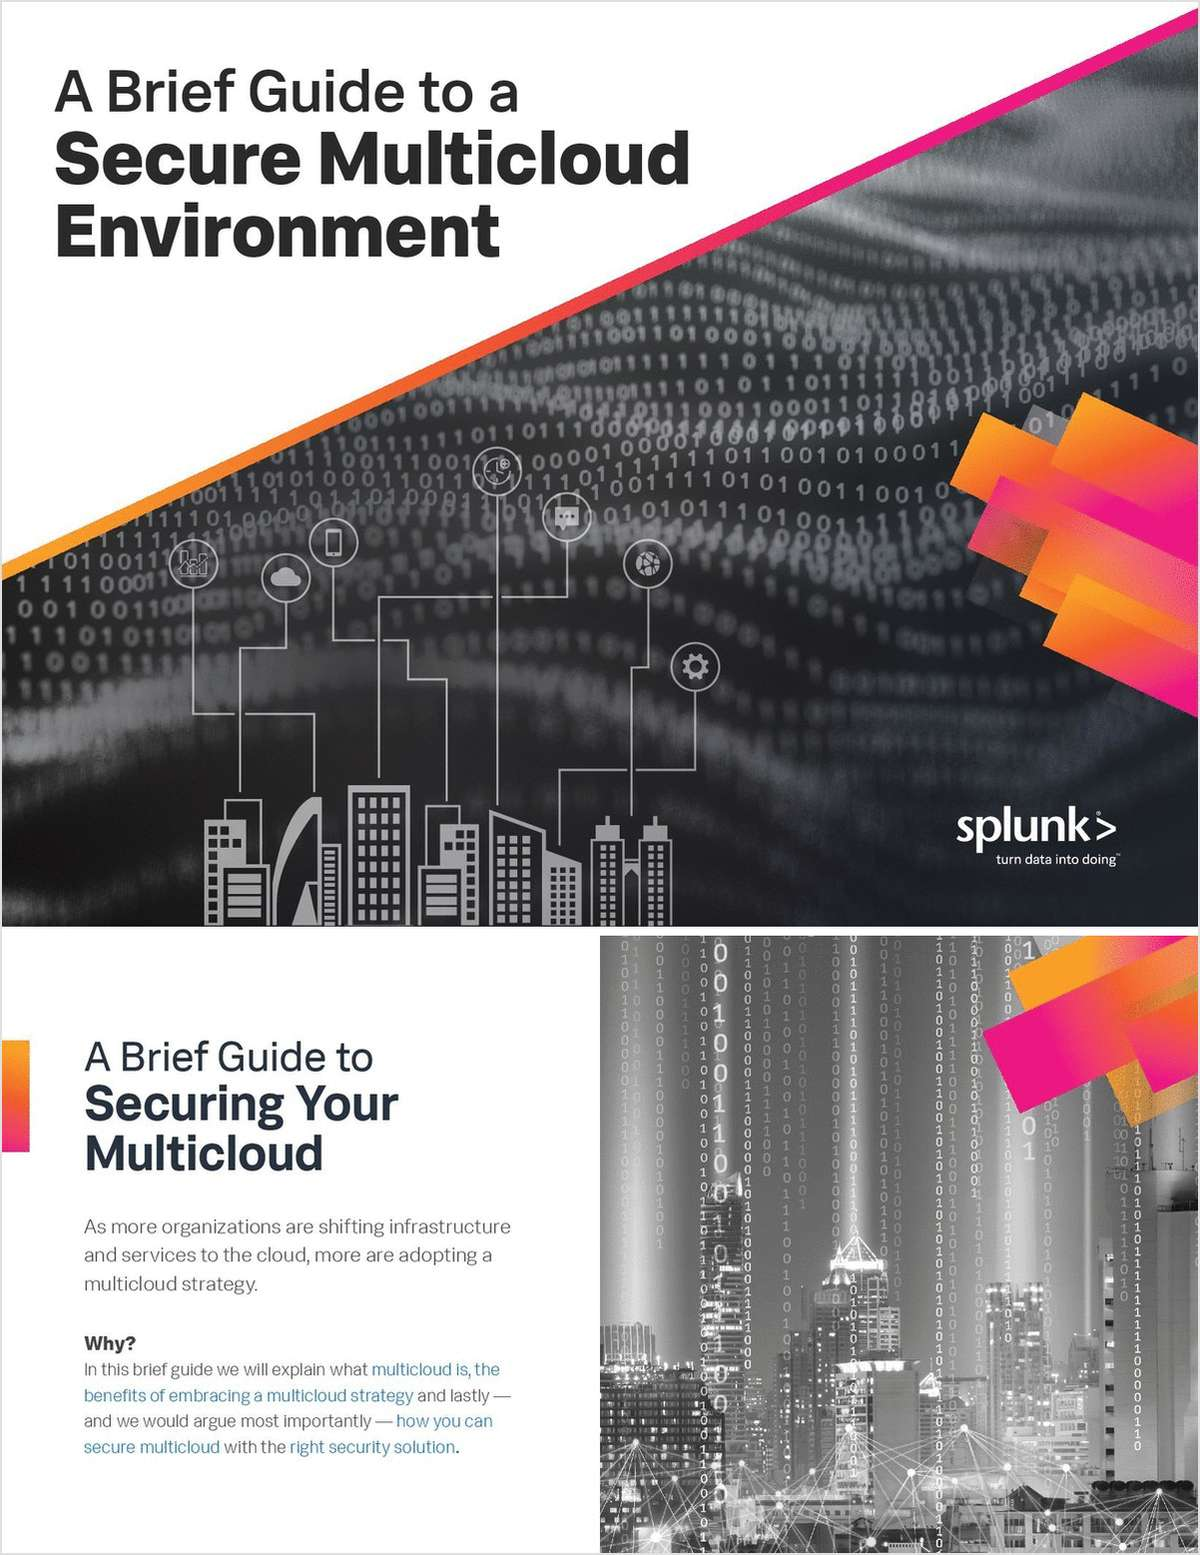 A Brief Guide to a Secure Multicloud Environment